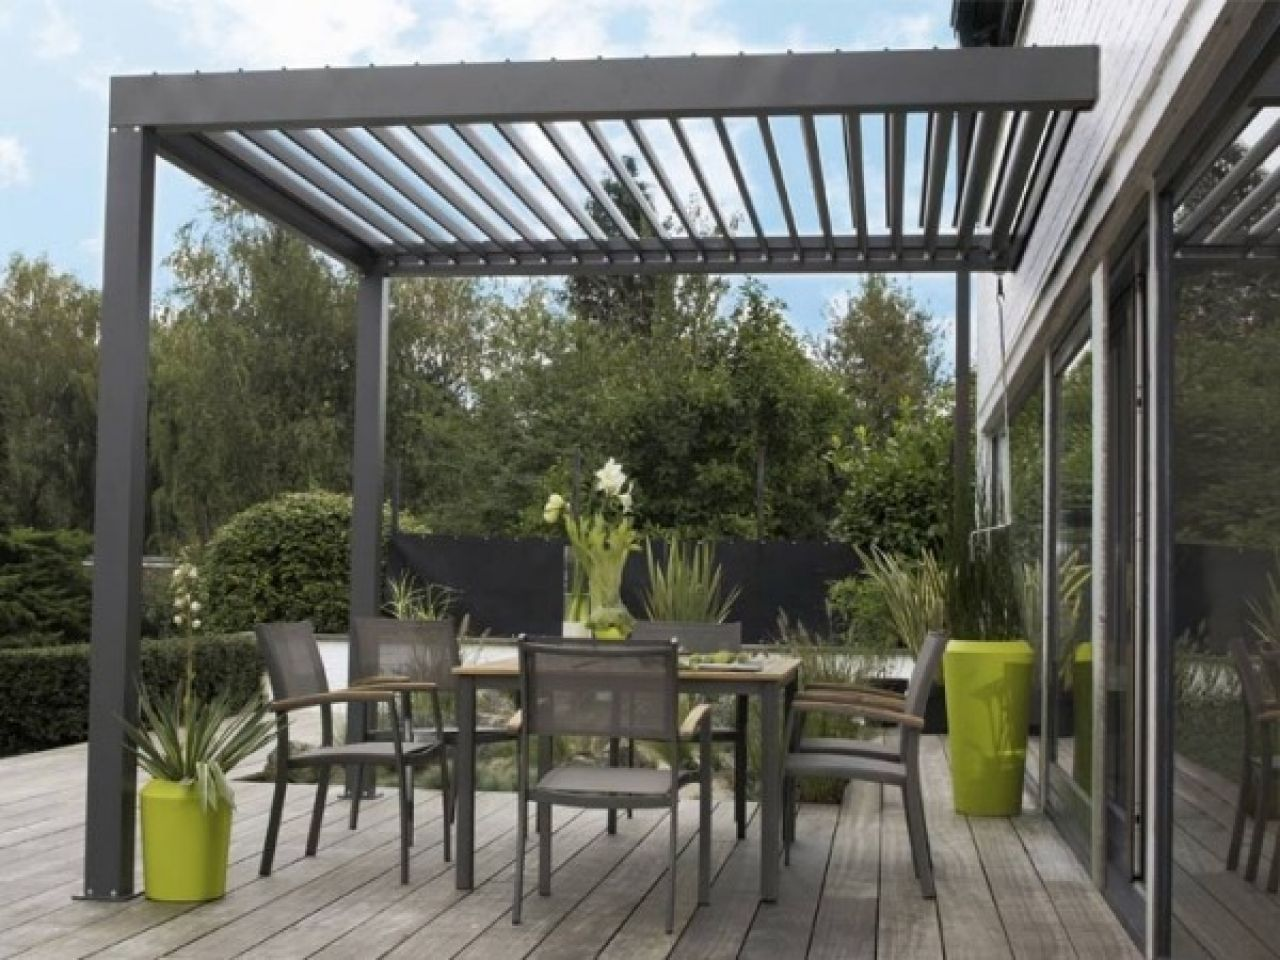 Design Your Own Patio Design Your Own Landscape Ideas About How To  Renovations Outdoor Home For